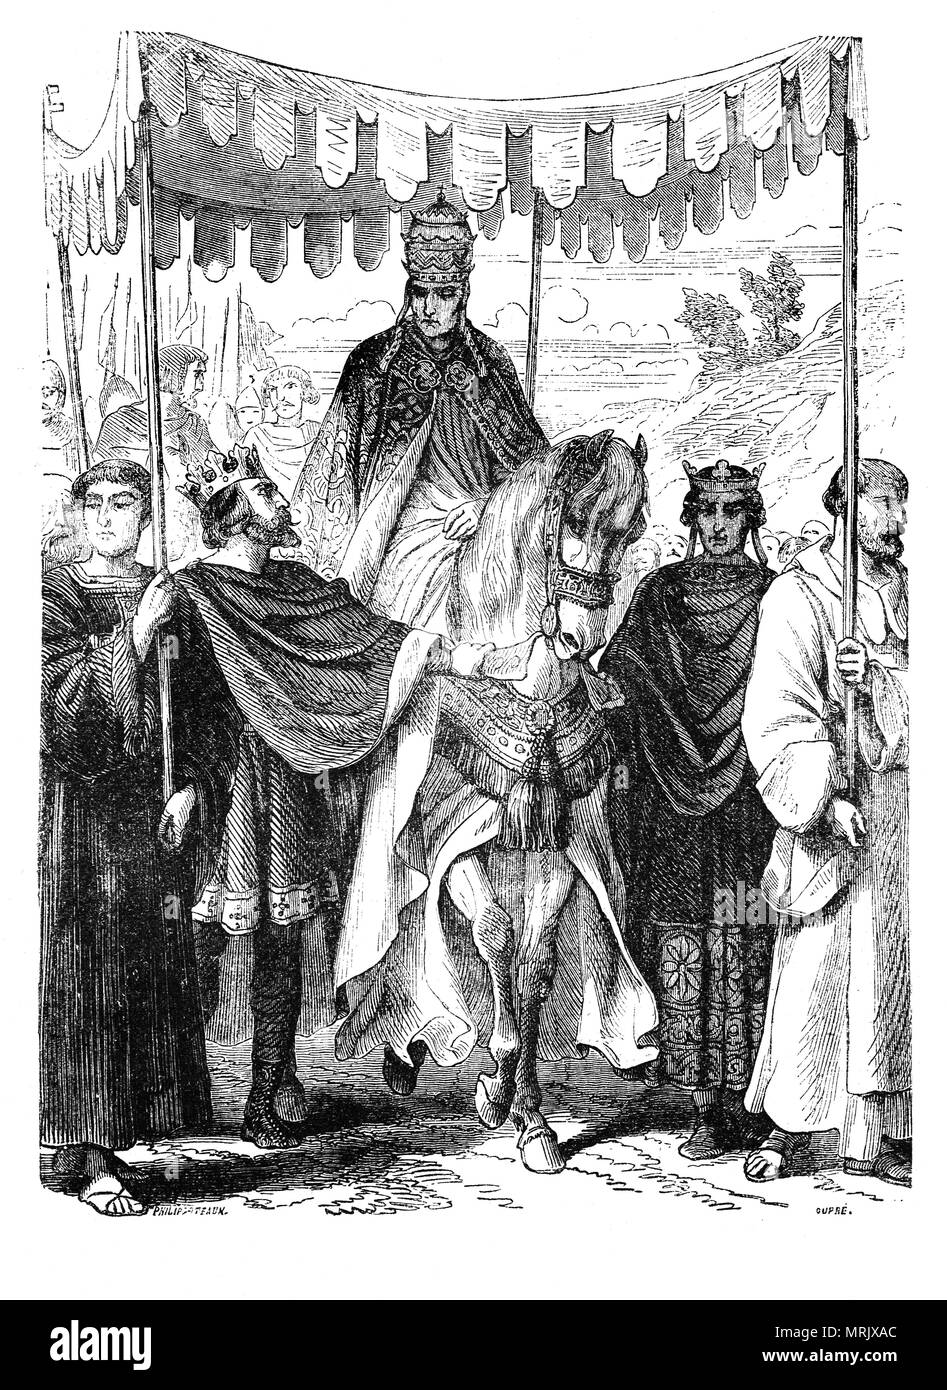 King Louis VII of France and King Henry II of England who recognized the authority of Pope Alexander III escorting him in France.  On 7 September 1159, Pope Alexander III was chosen as the successor of Pope Adrian IV. However a schism occured when a minority of the cardinals, however, elected the cardinal priest Octavian, who assumed the name of Victor IV and became the German Emperor's antipope and he received the approval of most of the kingdoms of Europe. - Stock Image